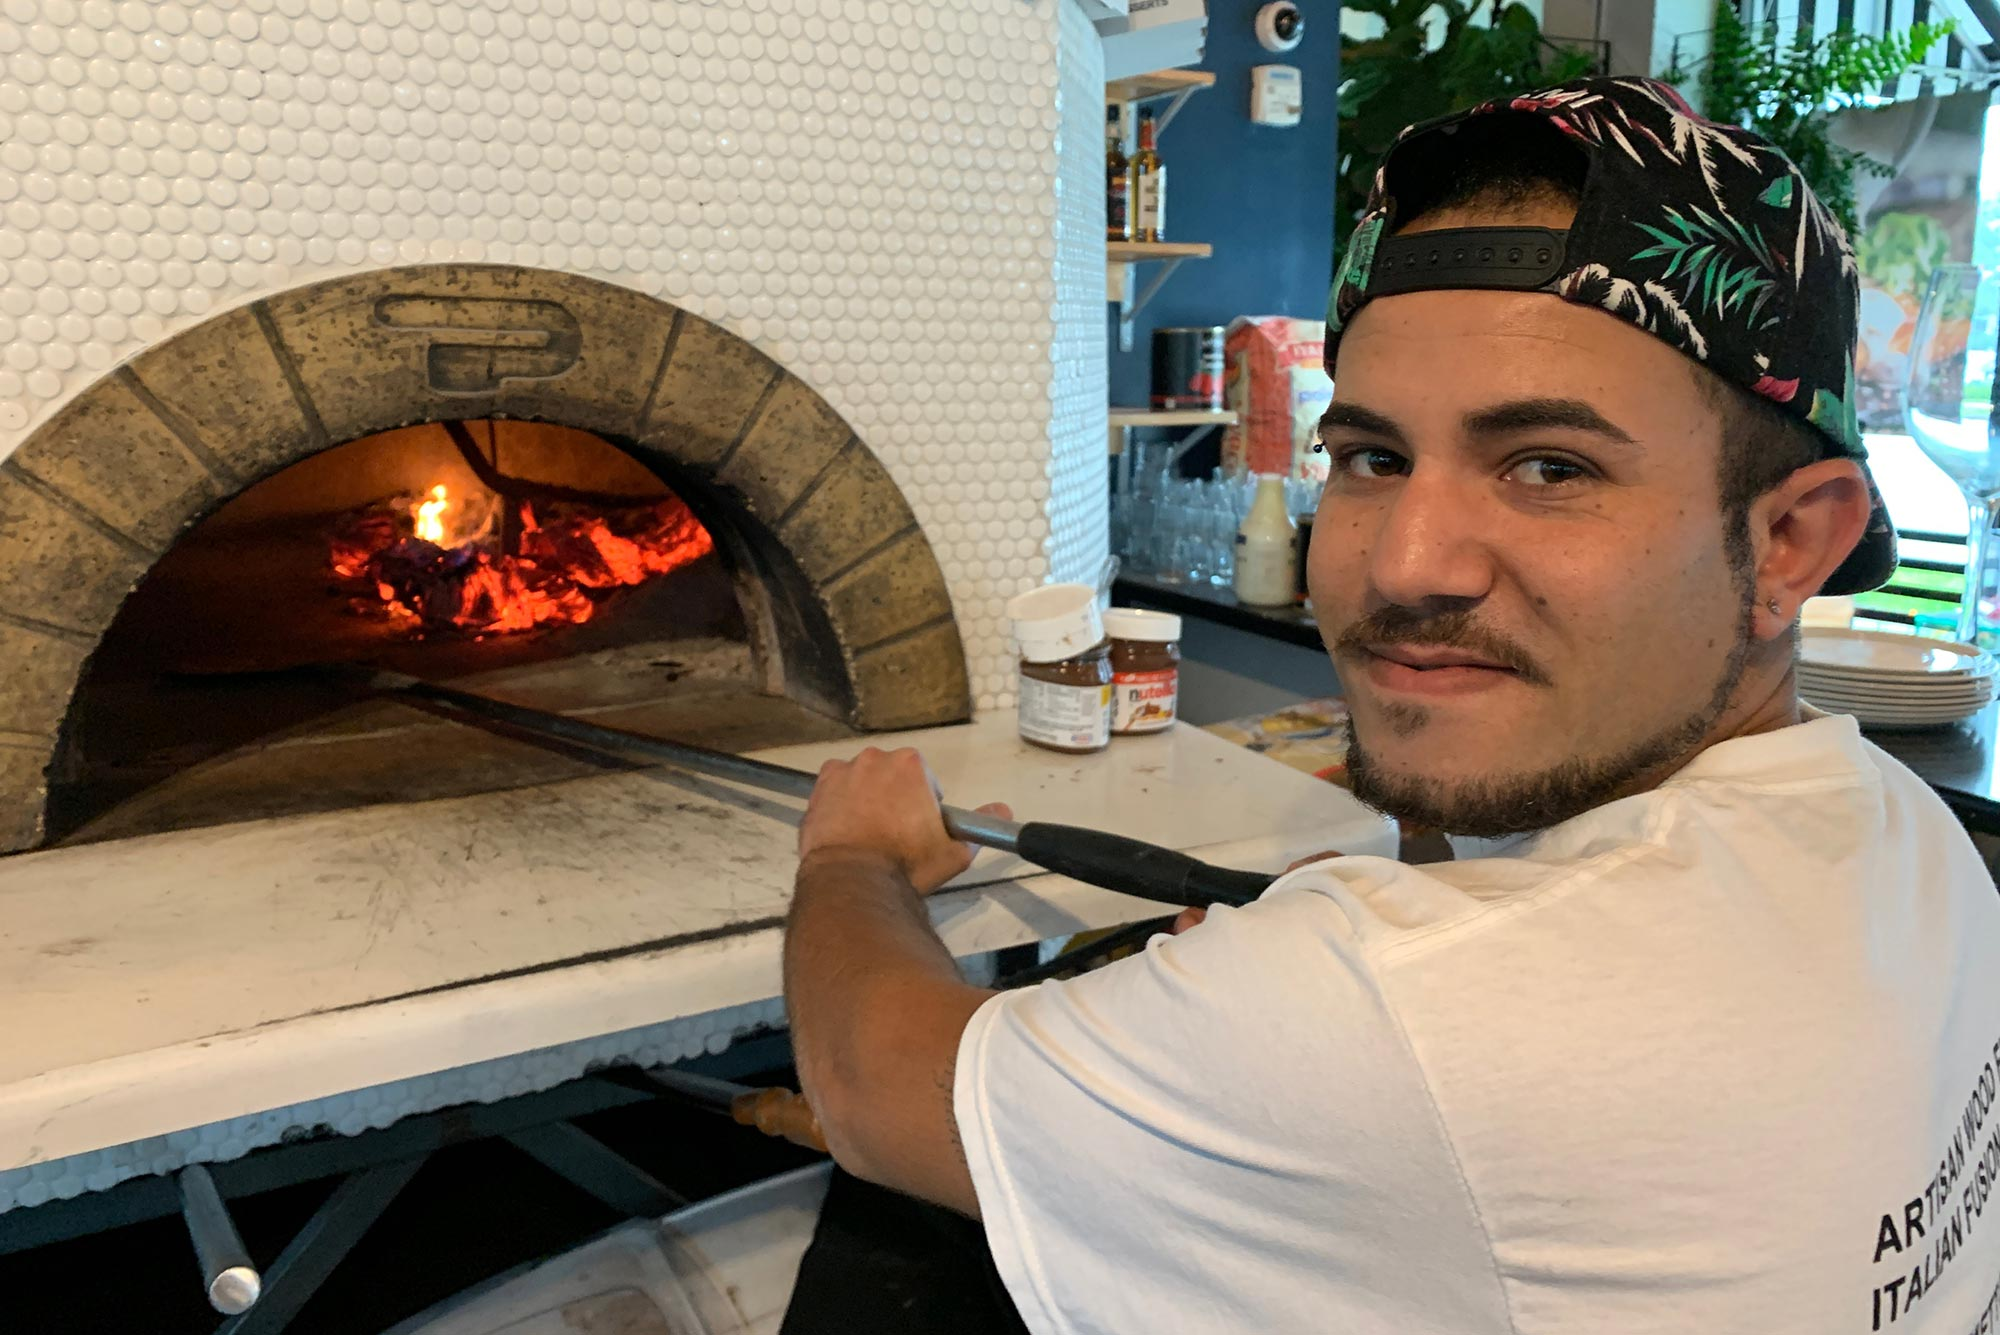 Pasquale gets things heated up in the wood-fired oven